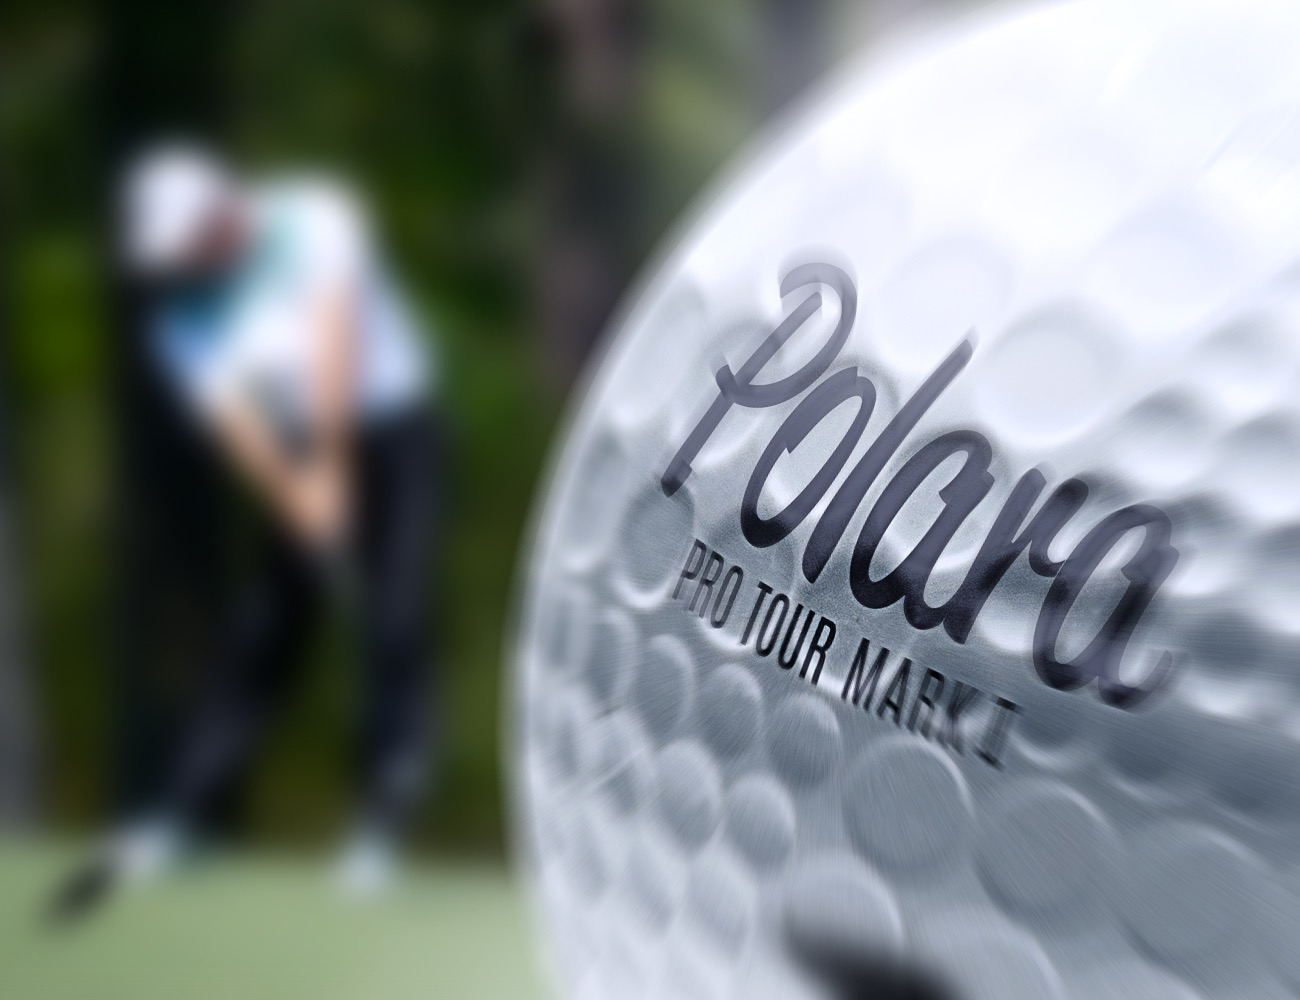 Polara Pro Tour FS Mark I – The Biggest Golf Ball Innovation In Decades!